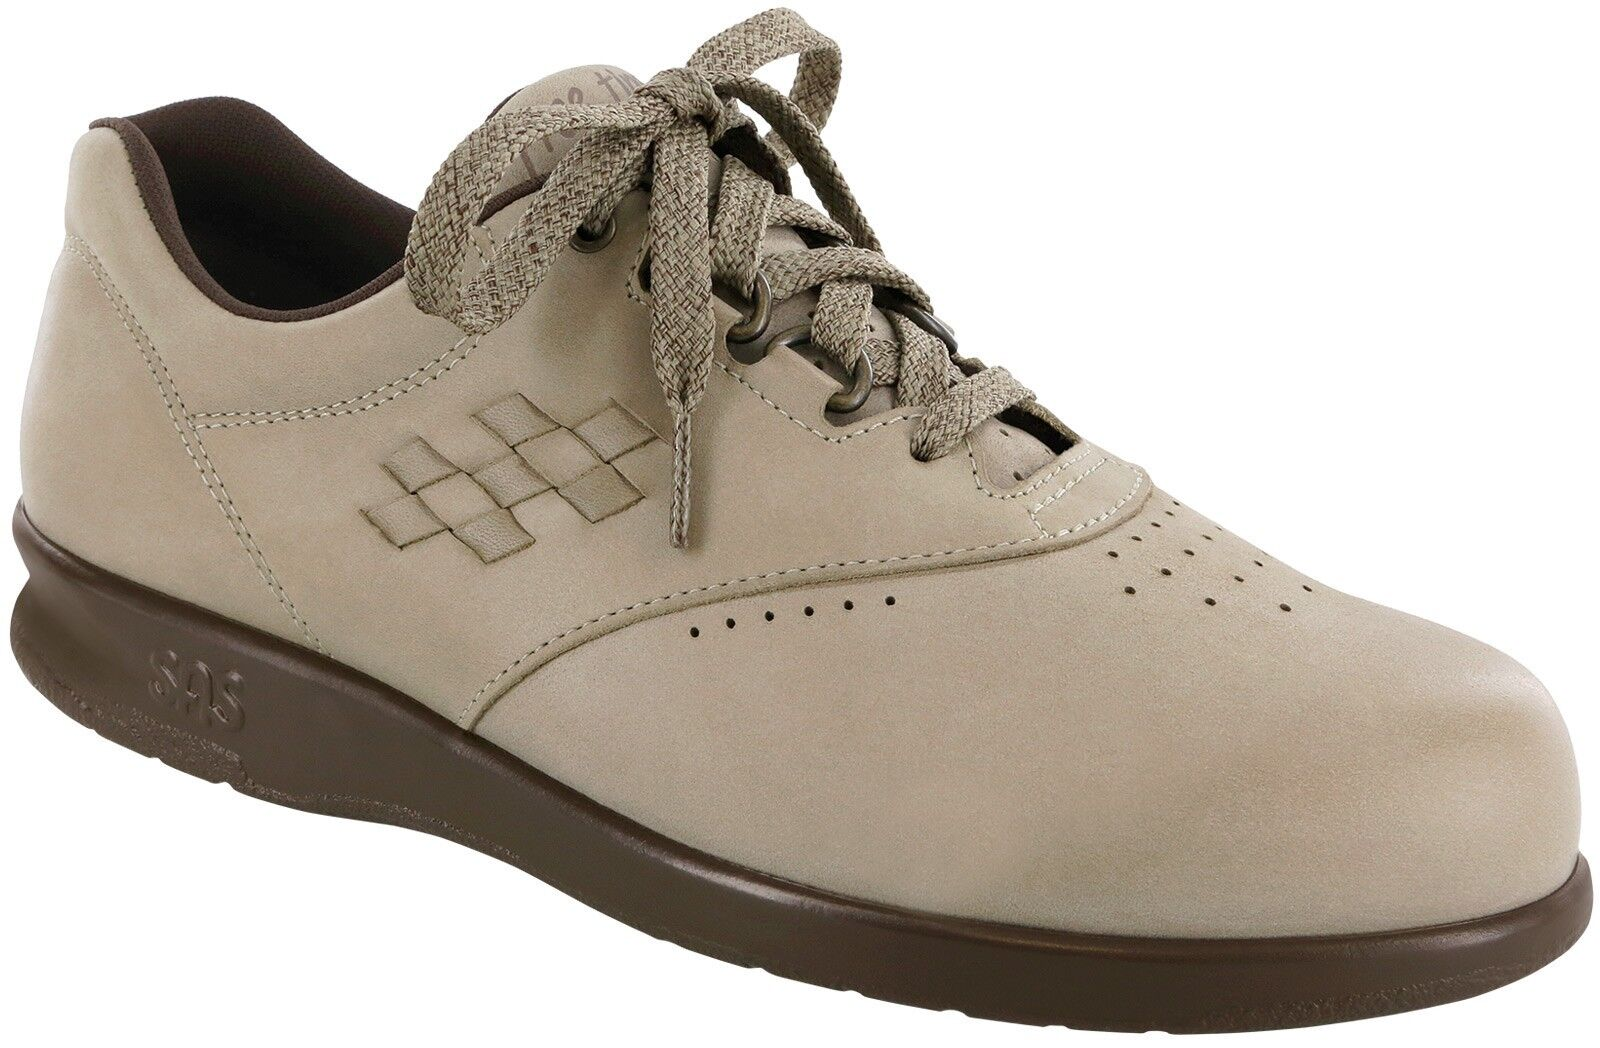 SAS Damens'S FREETIME TAUPE ARCH NUBUCK WALKING COMFORT Schuhe ARCH TAUPE SUPPORT,MADE IN USA 26f9af